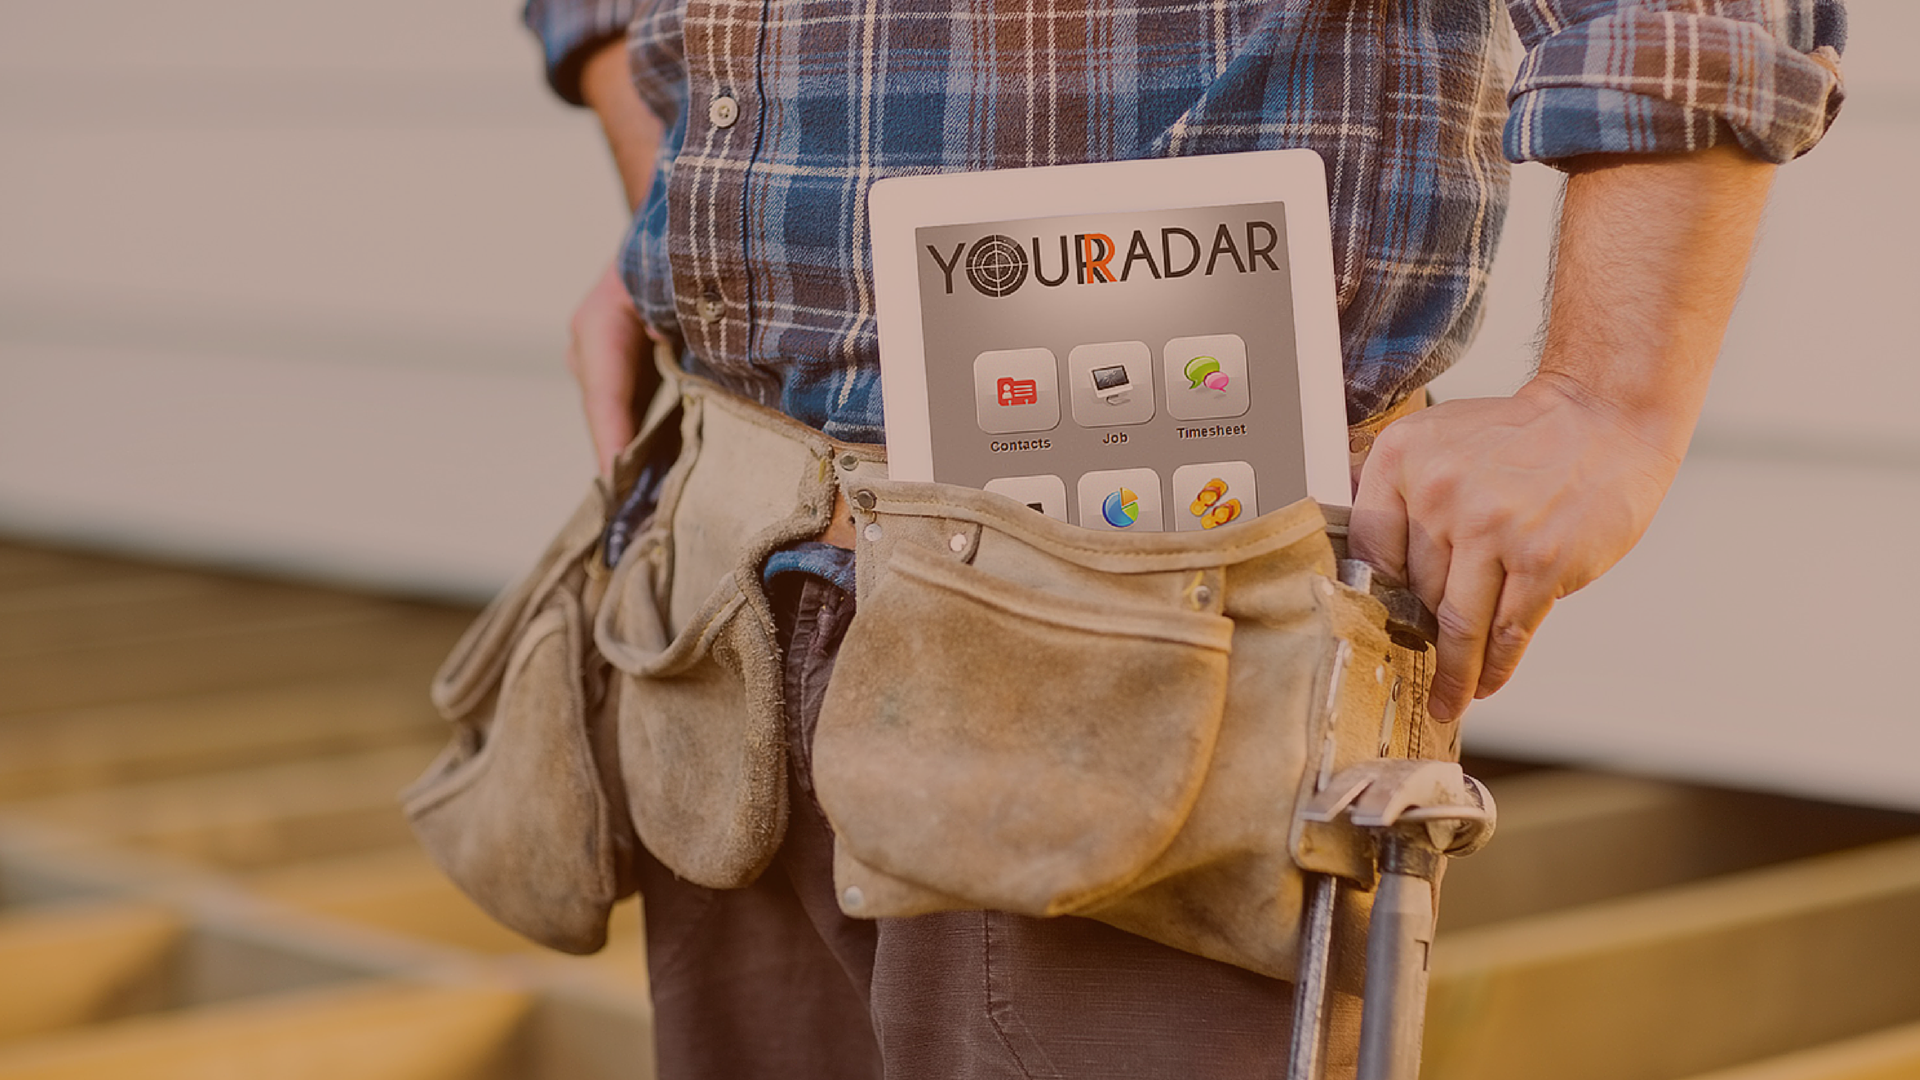 Yourradar workforce management software